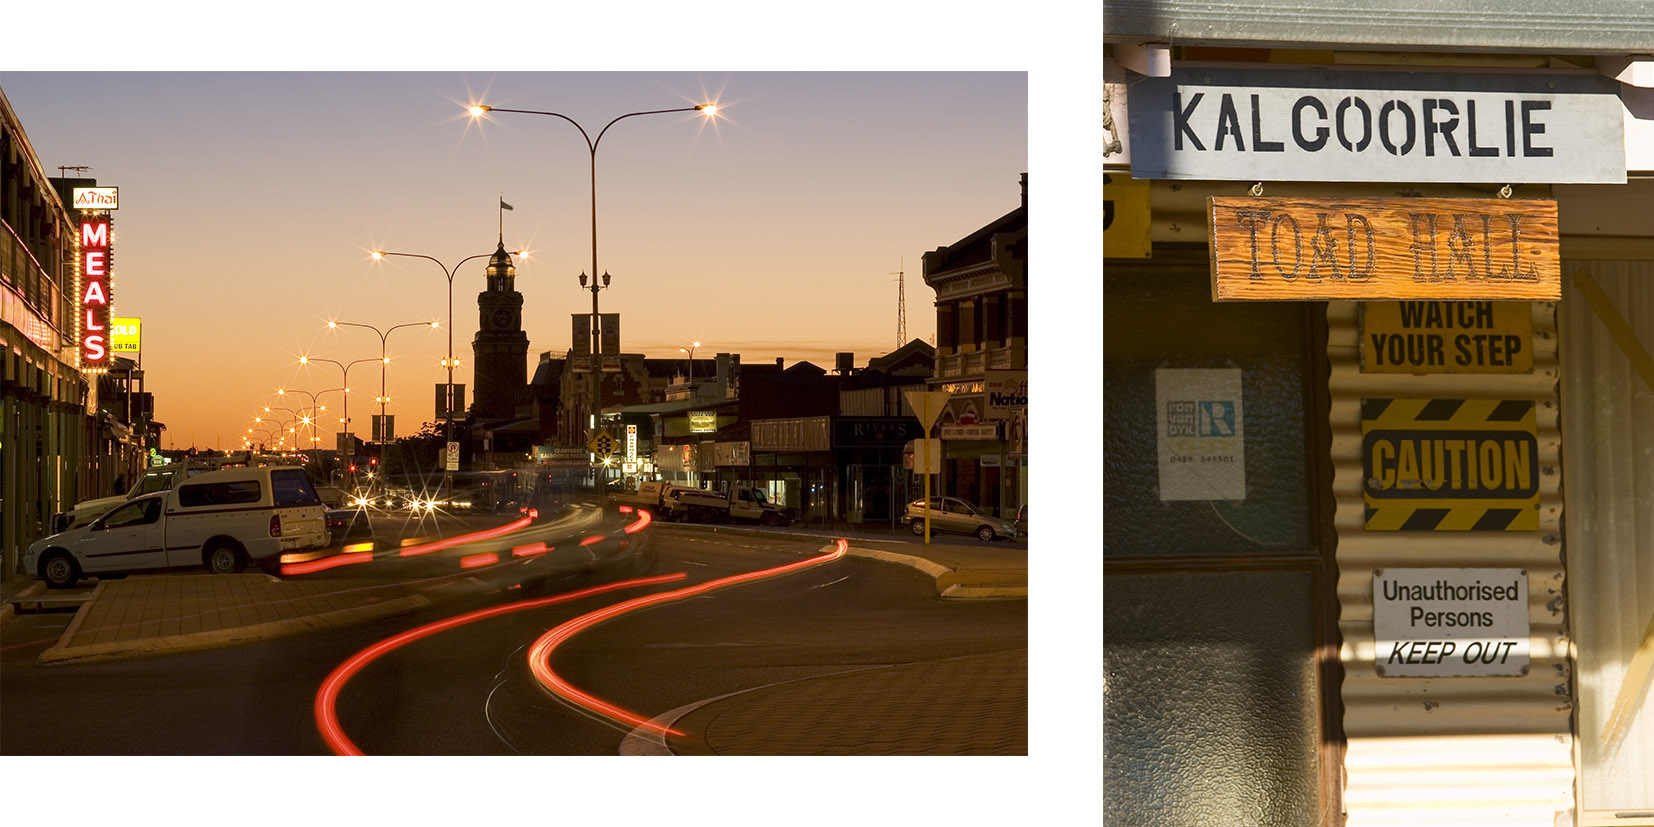 City Of Kalgoorlie